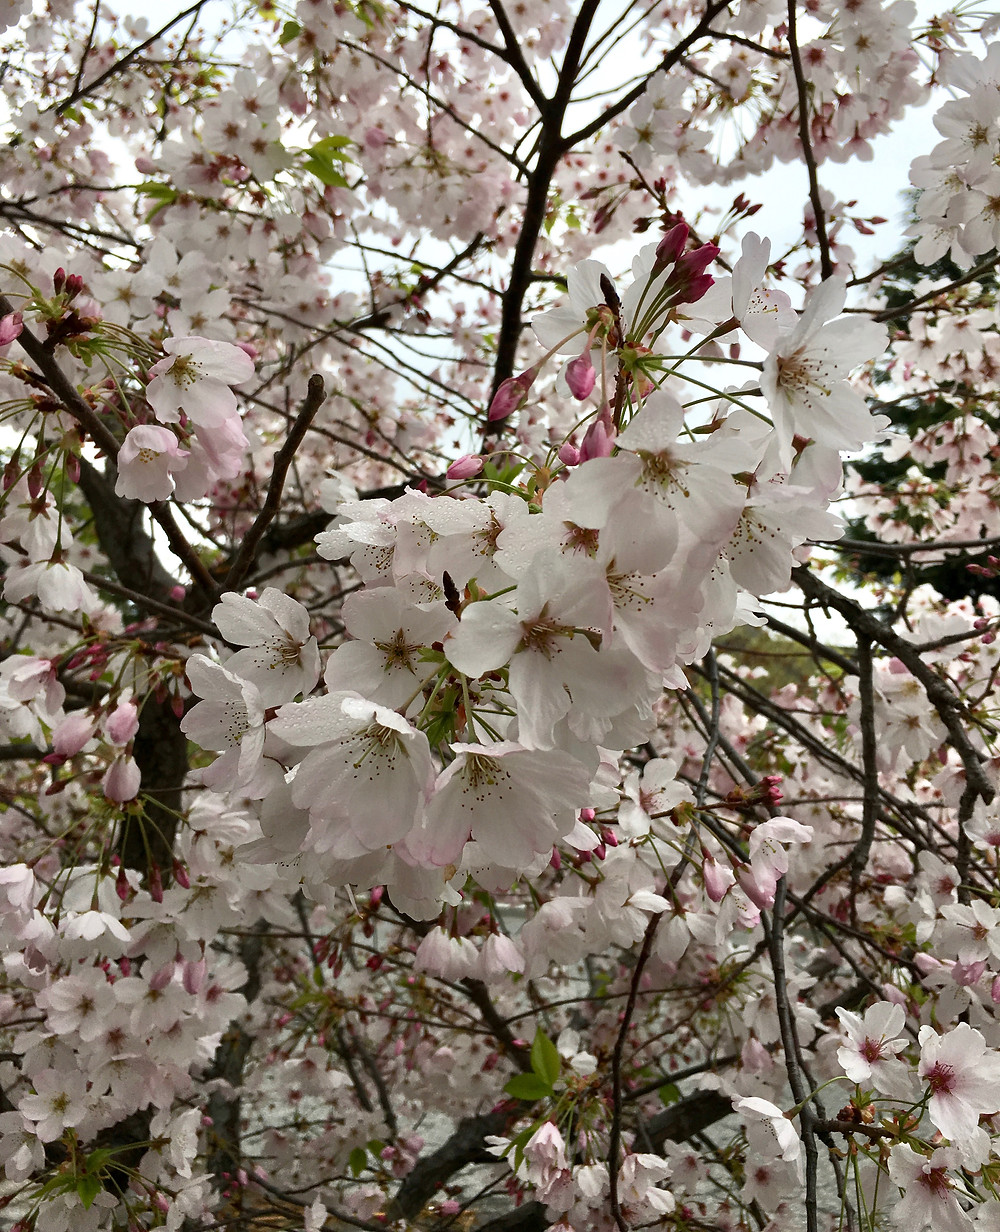 Flowering cherry branches in bloom